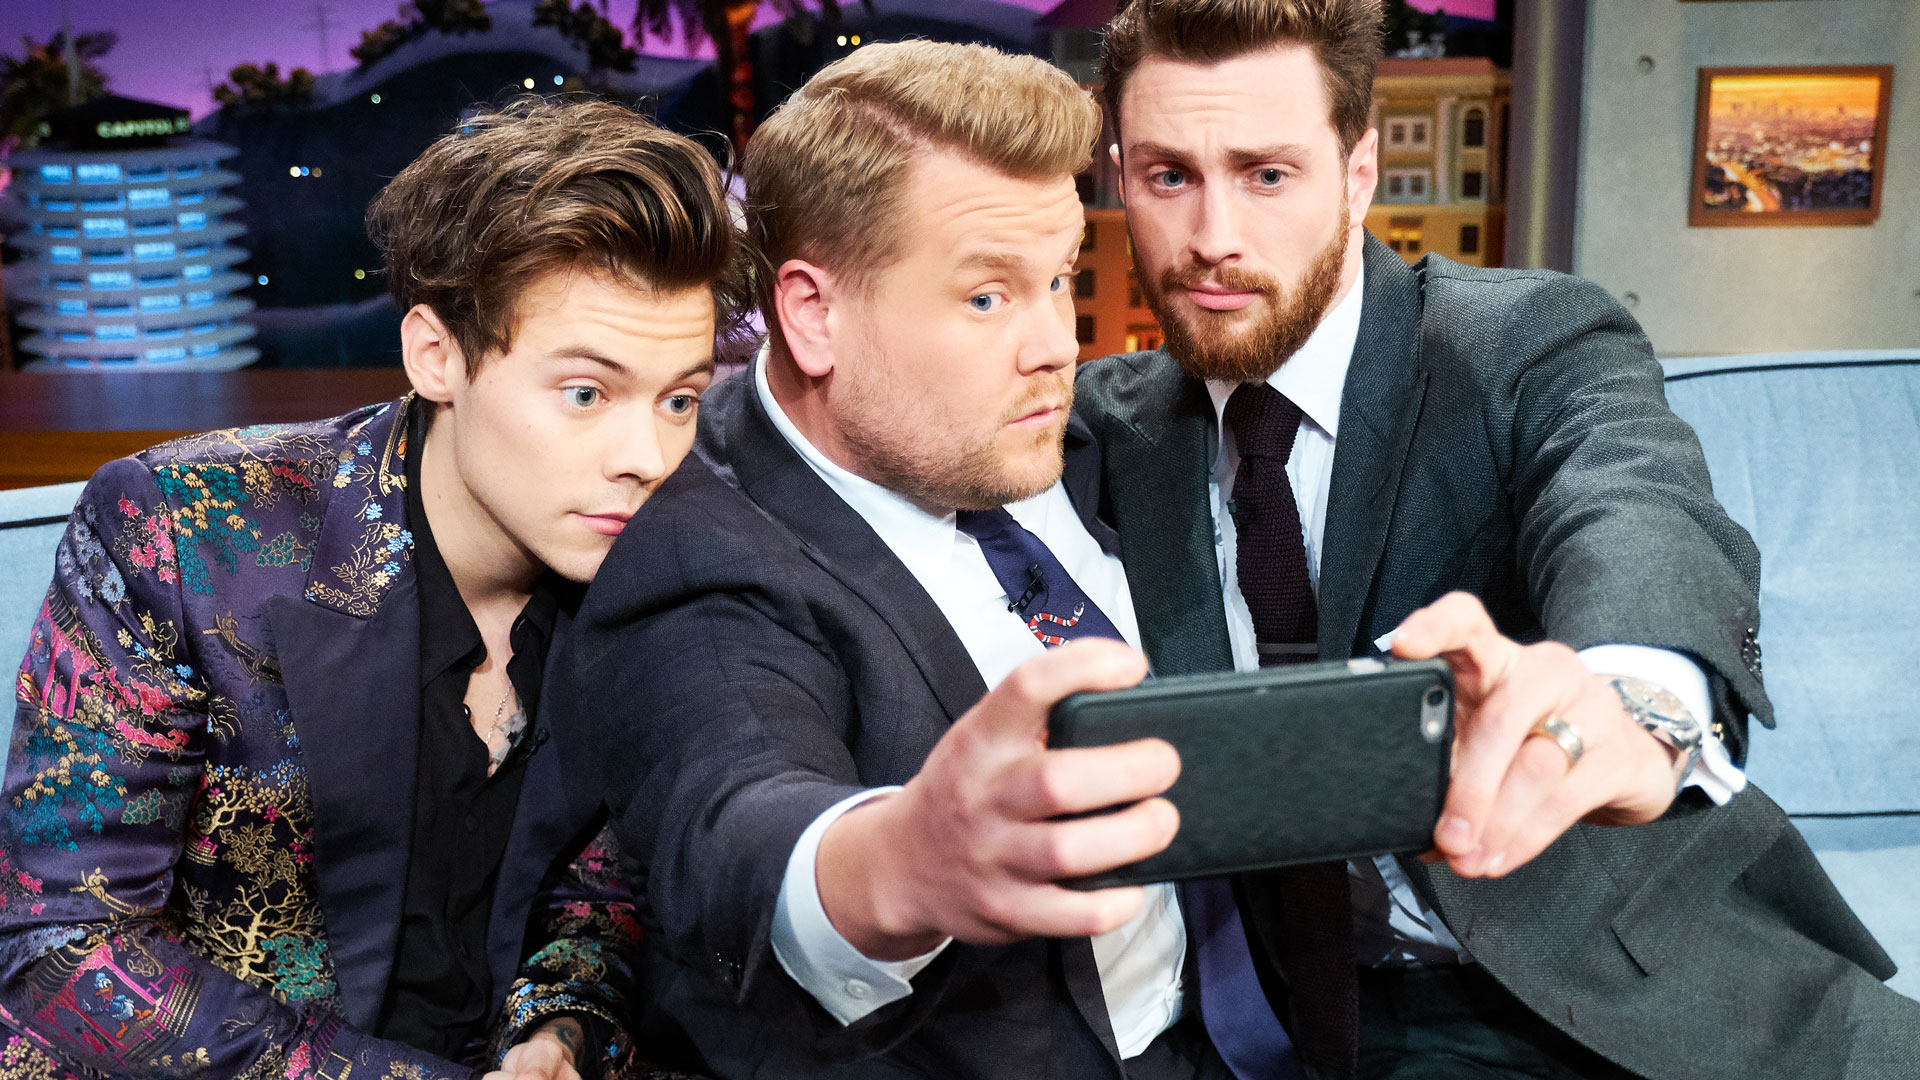 A quick selfie with James Corden and Aaron Taylor-Johnson